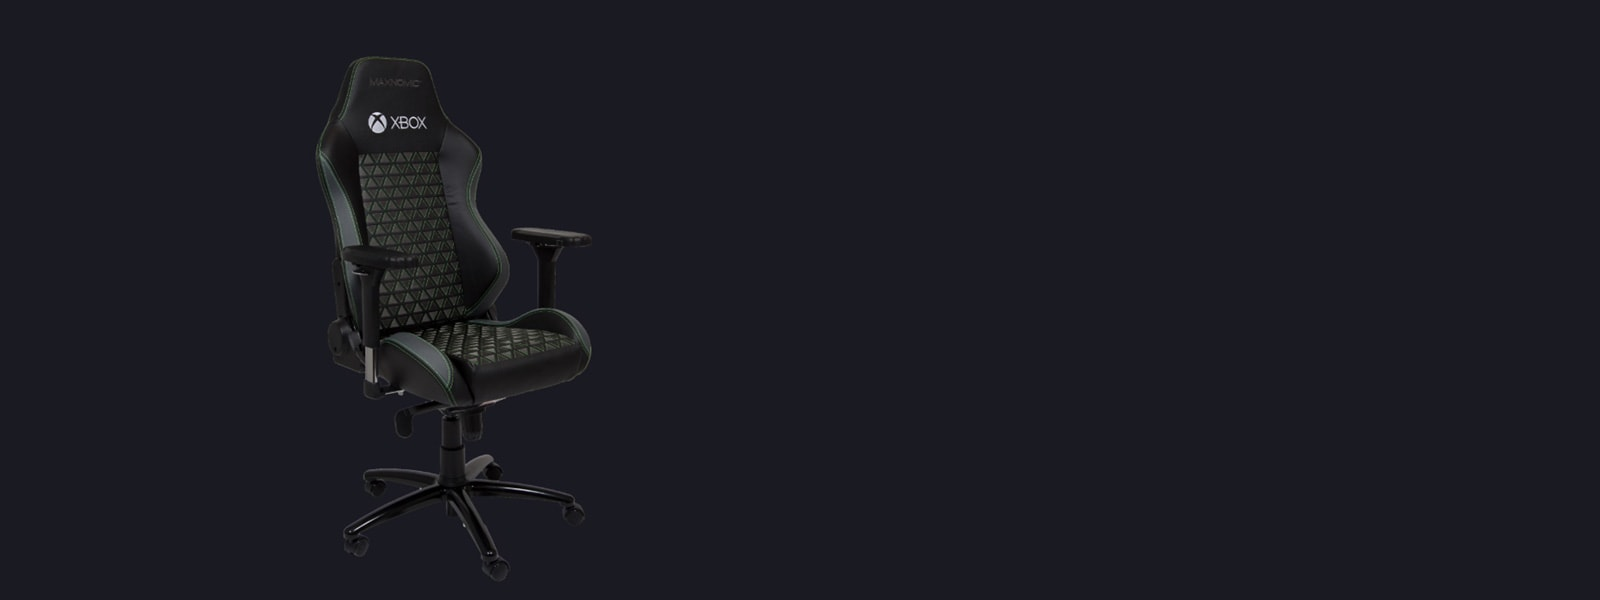 MAXNOMIC® XBOX 2.0 PRO Gaming Chair Giveaway